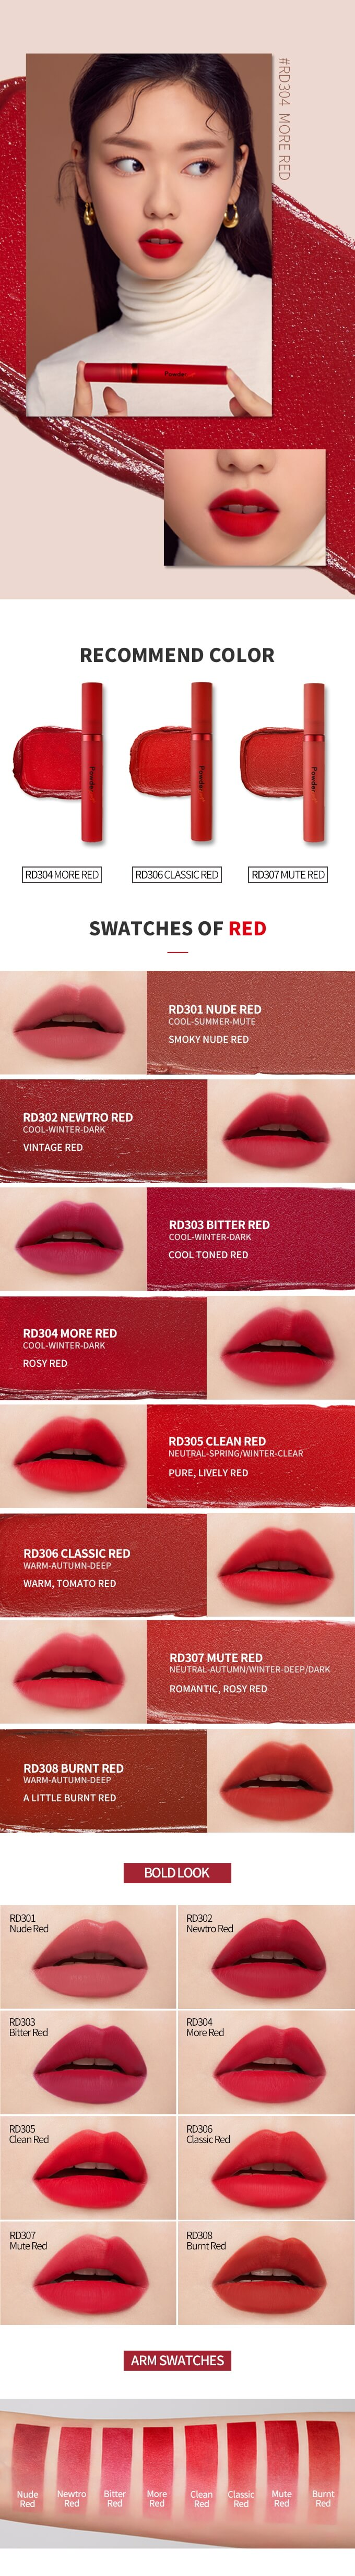 Etude House Powder Rouge Tint [#01 RD301 Nude Red]